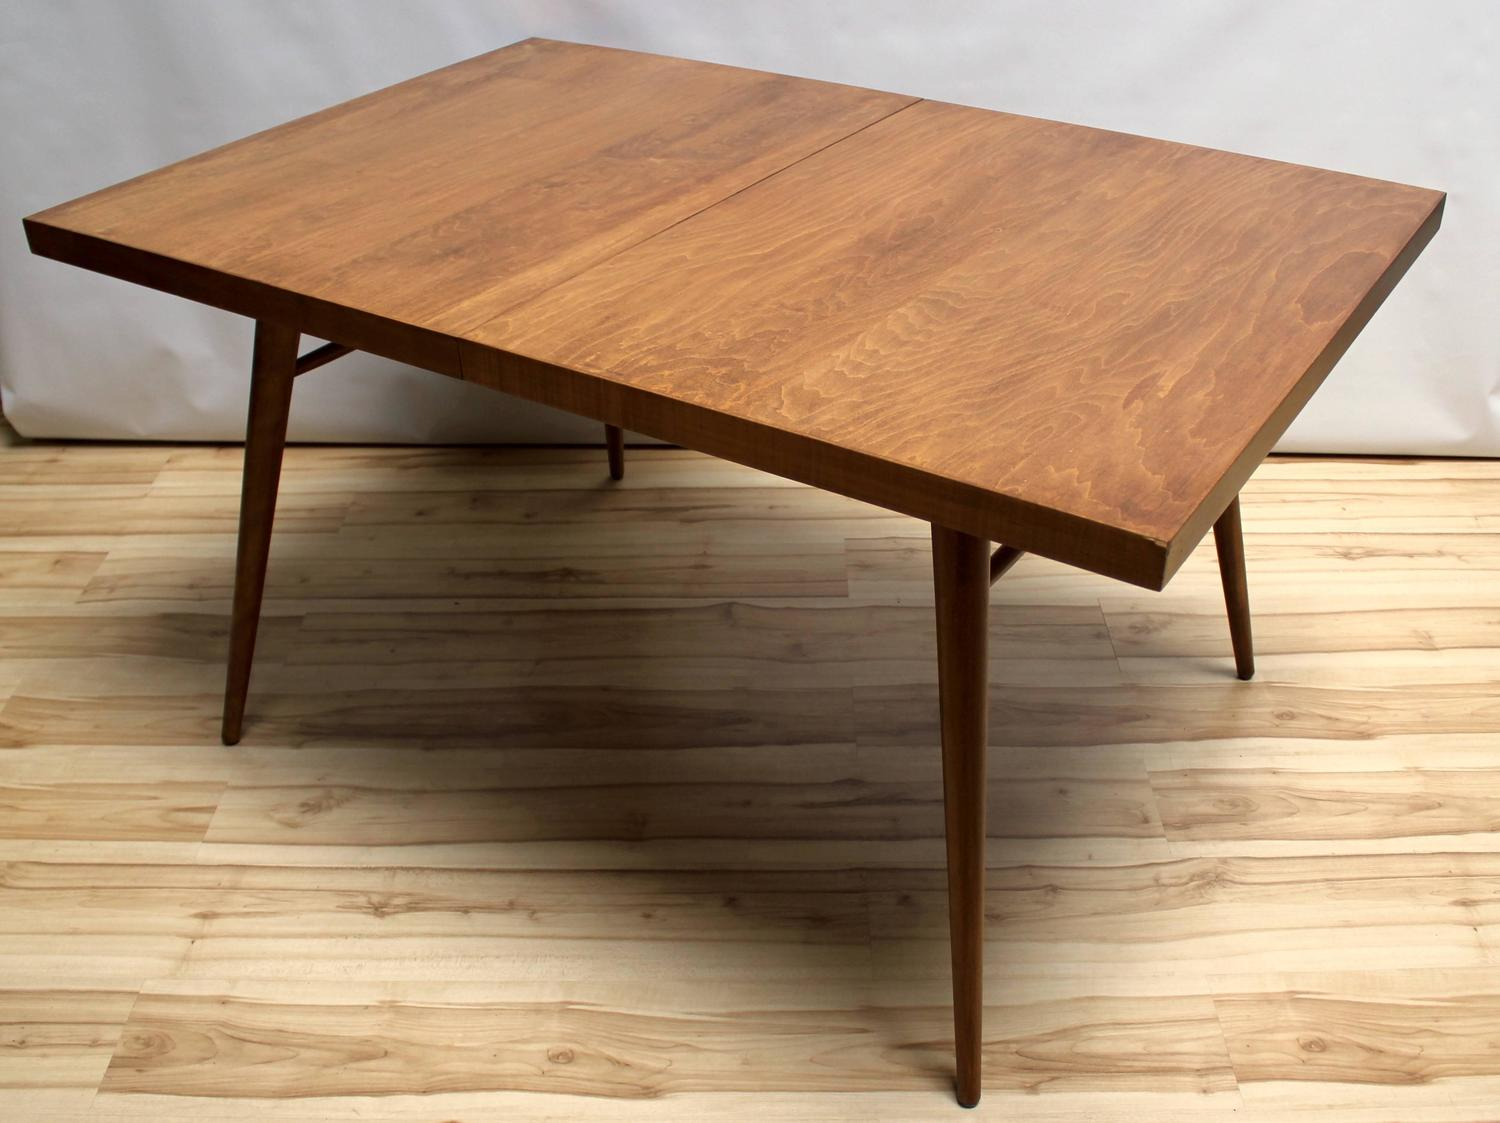 1950s paul mccobb planner group maple dining table with two leaves at 1stdibs. Black Bedroom Furniture Sets. Home Design Ideas